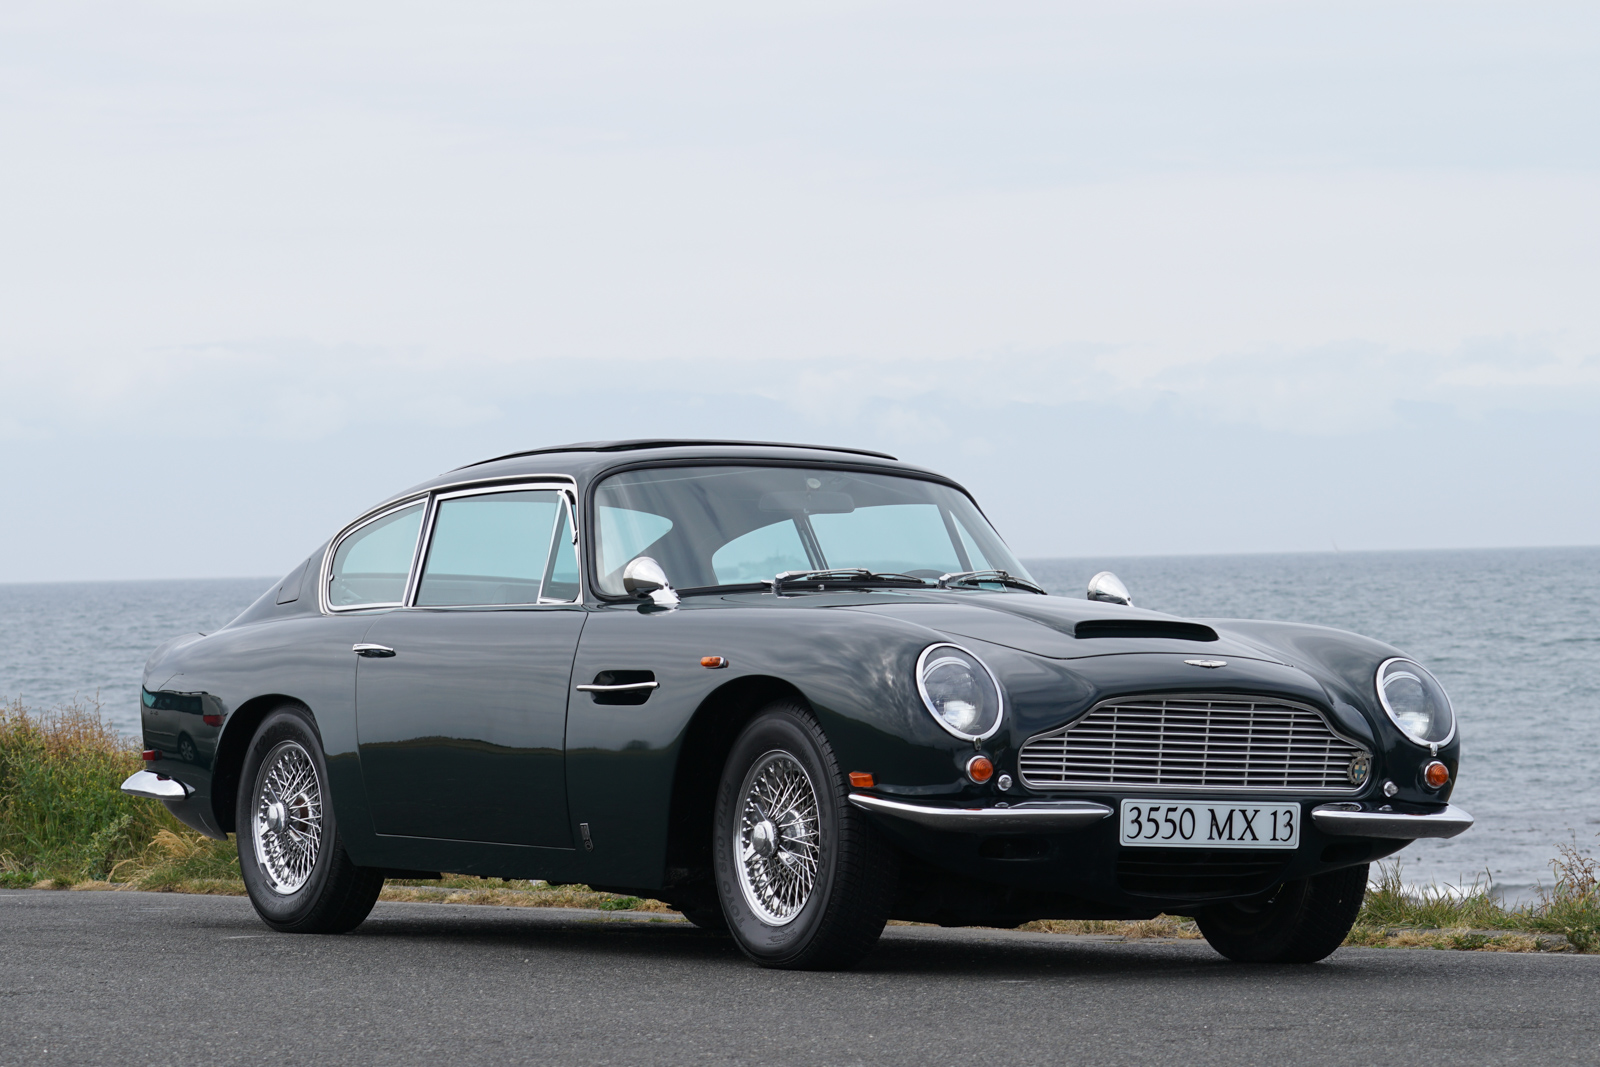 Aston Martin DB For Sale Silver Arrow Cars Ltd - Aston martin 1970 for sale